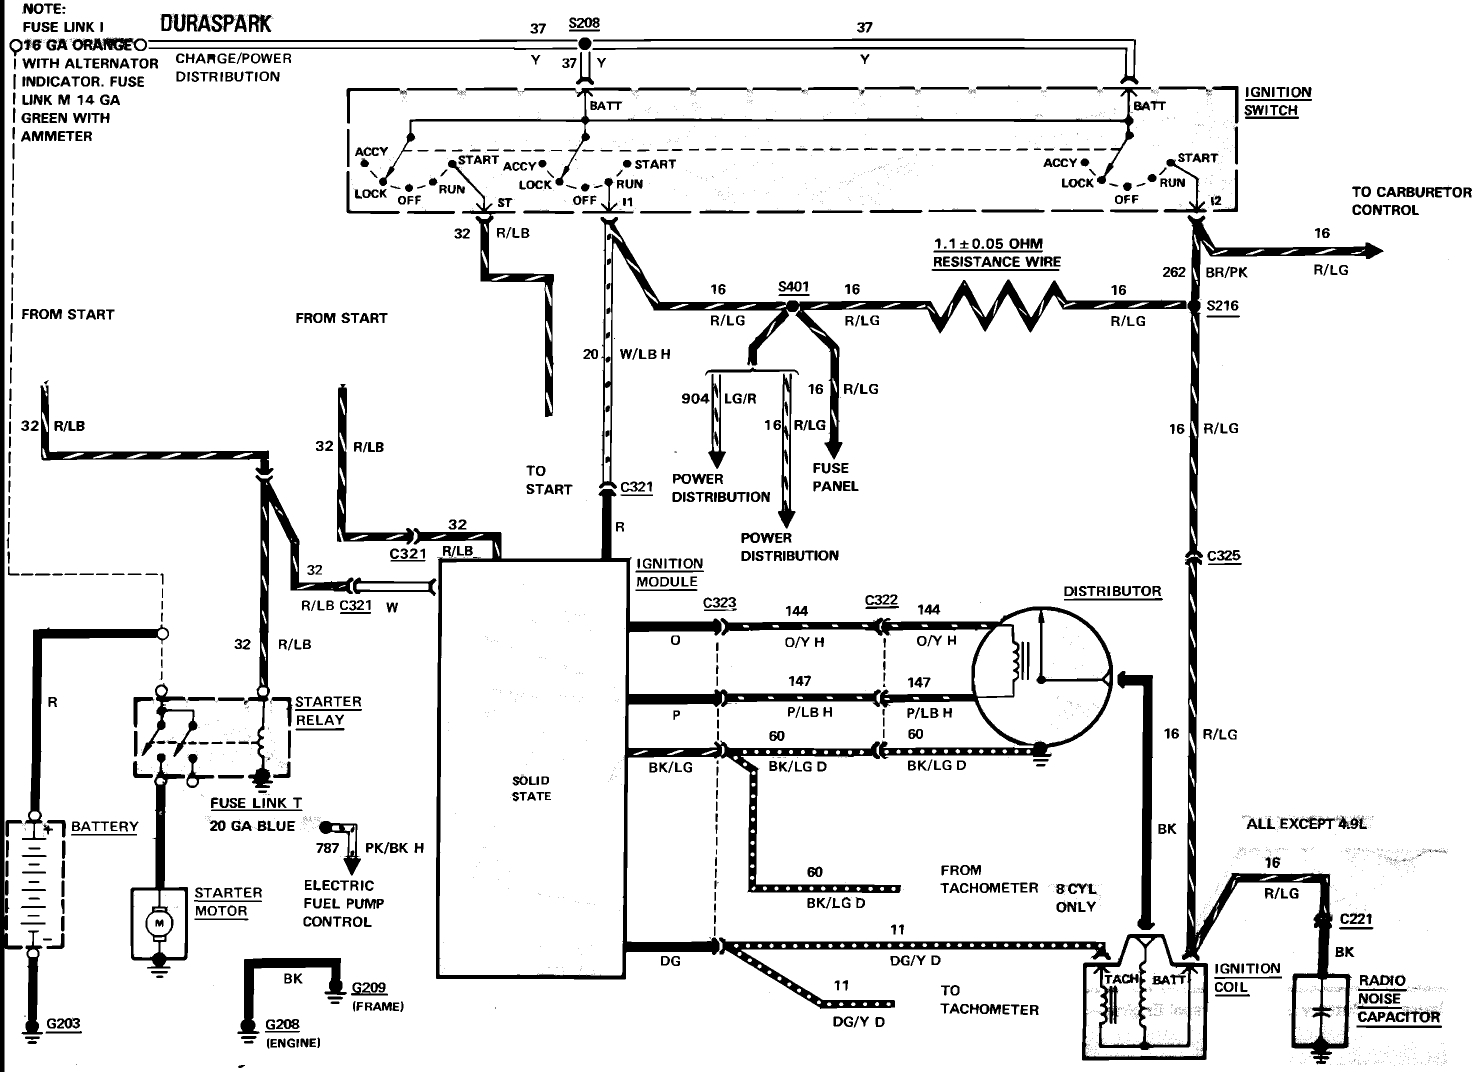 key switch wiring diagram ford f650 1989 ford f150 ignition wiring diagram | free wiring diagram